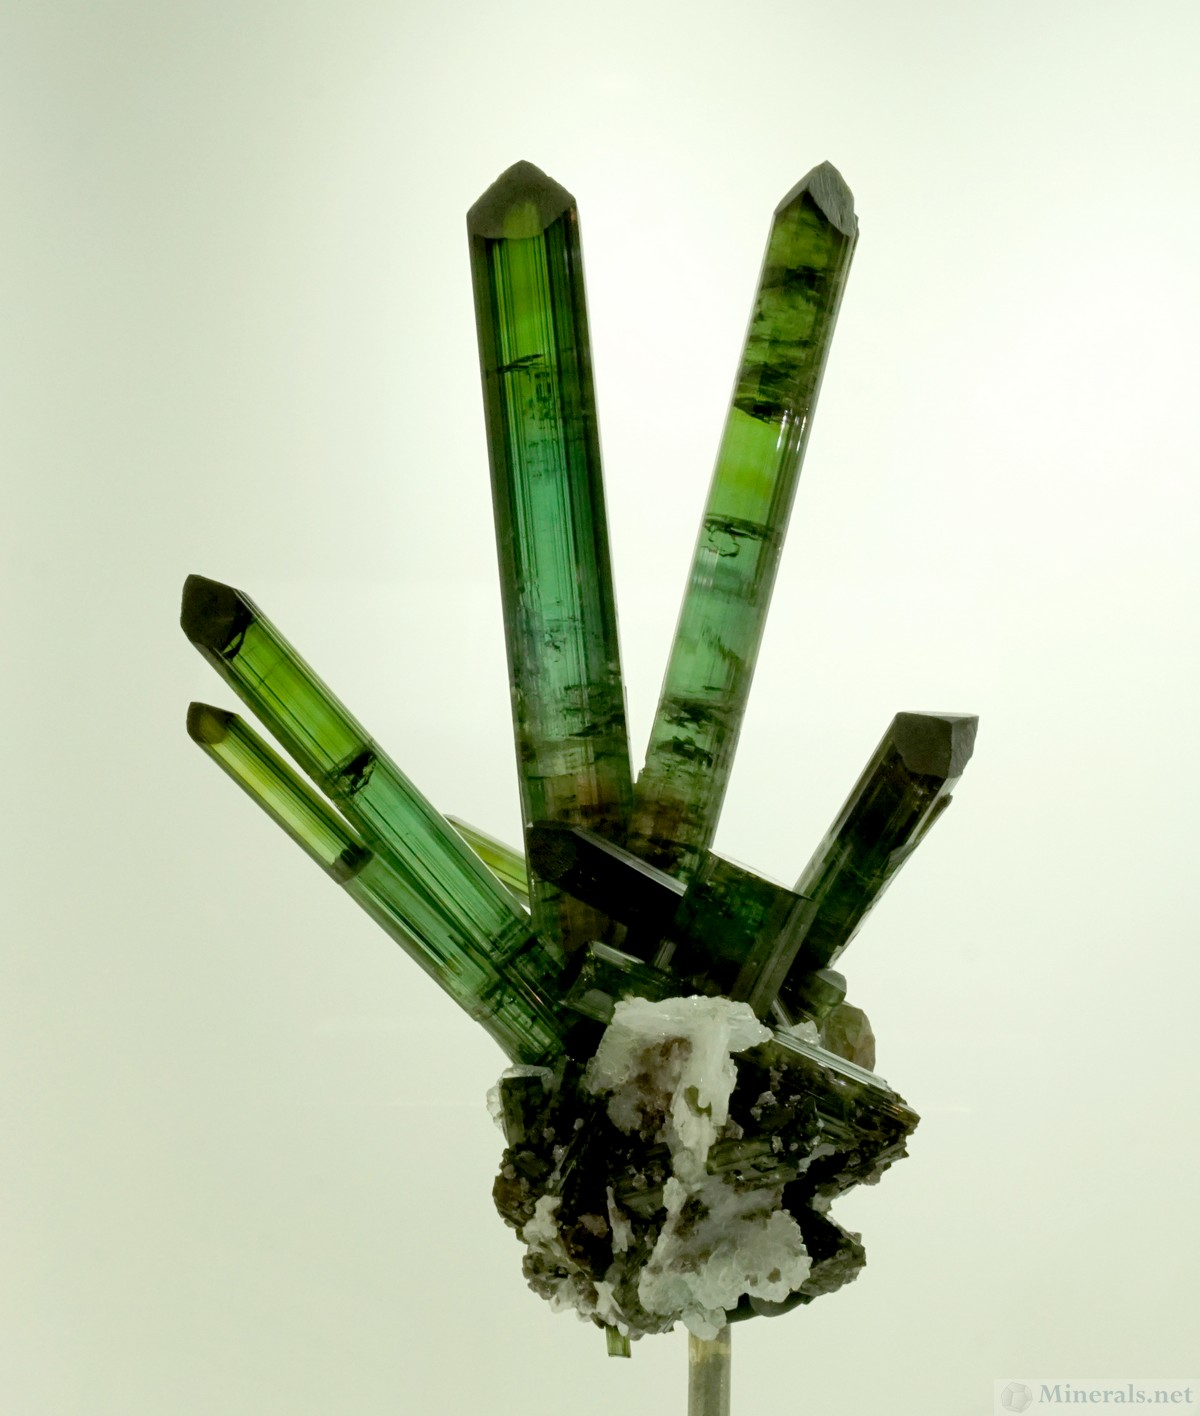 Another Exquisite Tourmaline Hand, most likely from Pederneira Mine, Minas Gerais, Brazil, Naturalcrationsmineralco.com